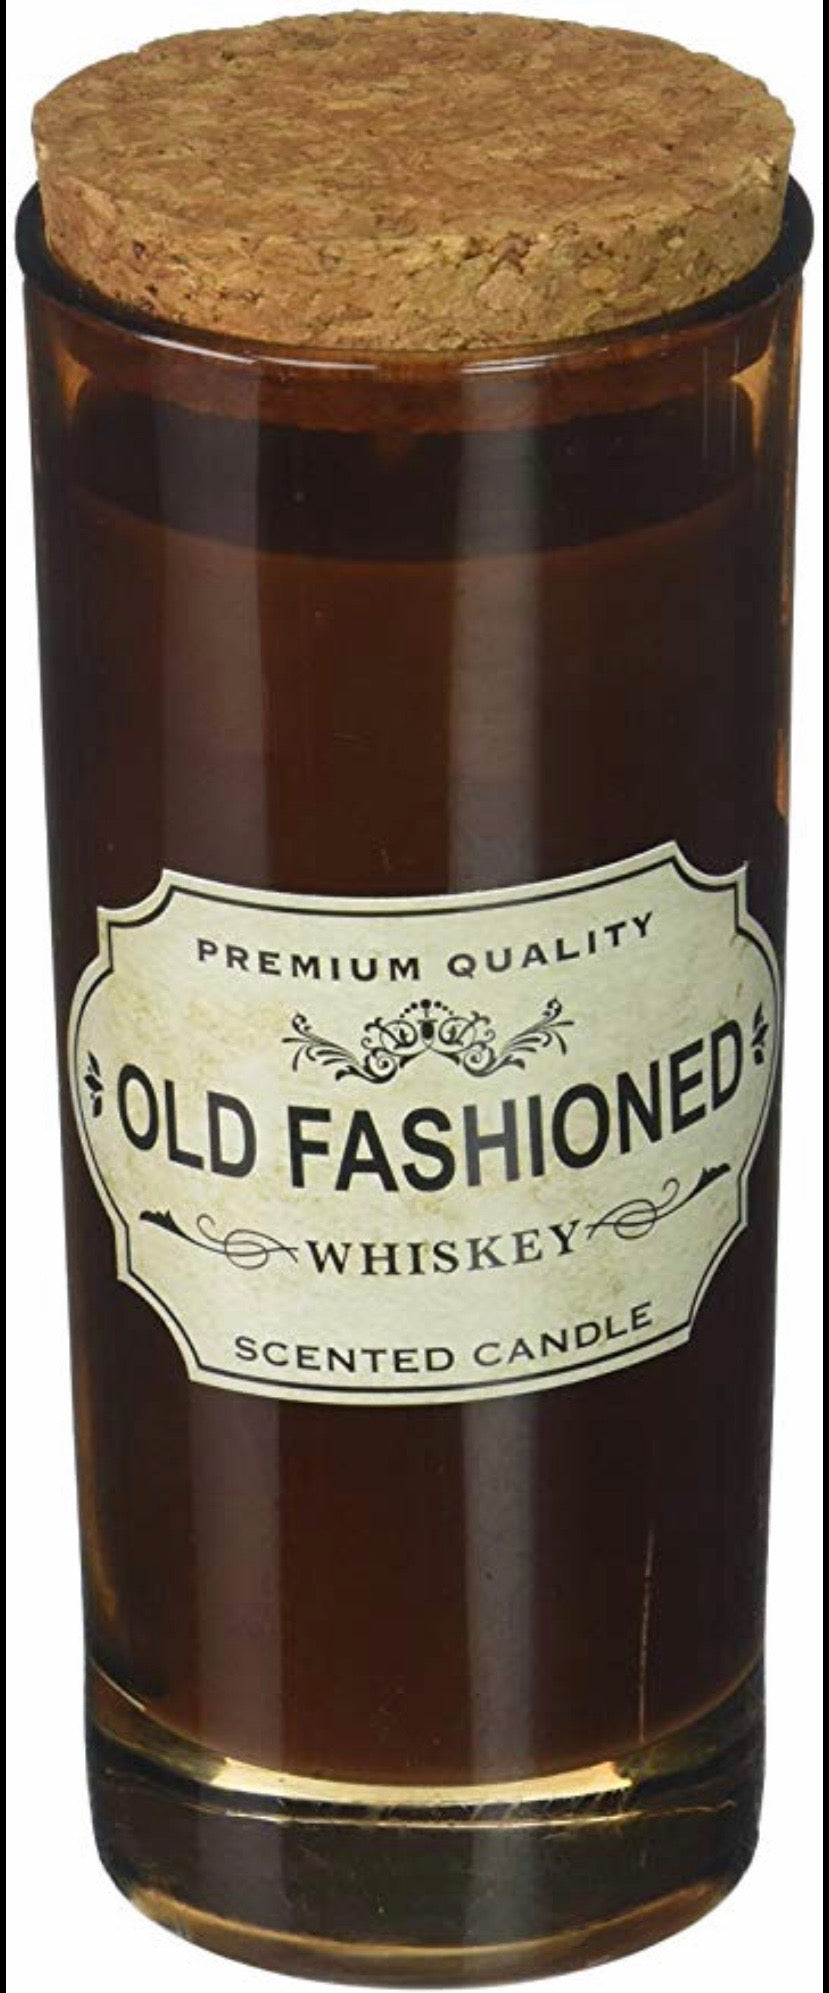 Cocktail Lounge Candle-highball glass-6 Oz.